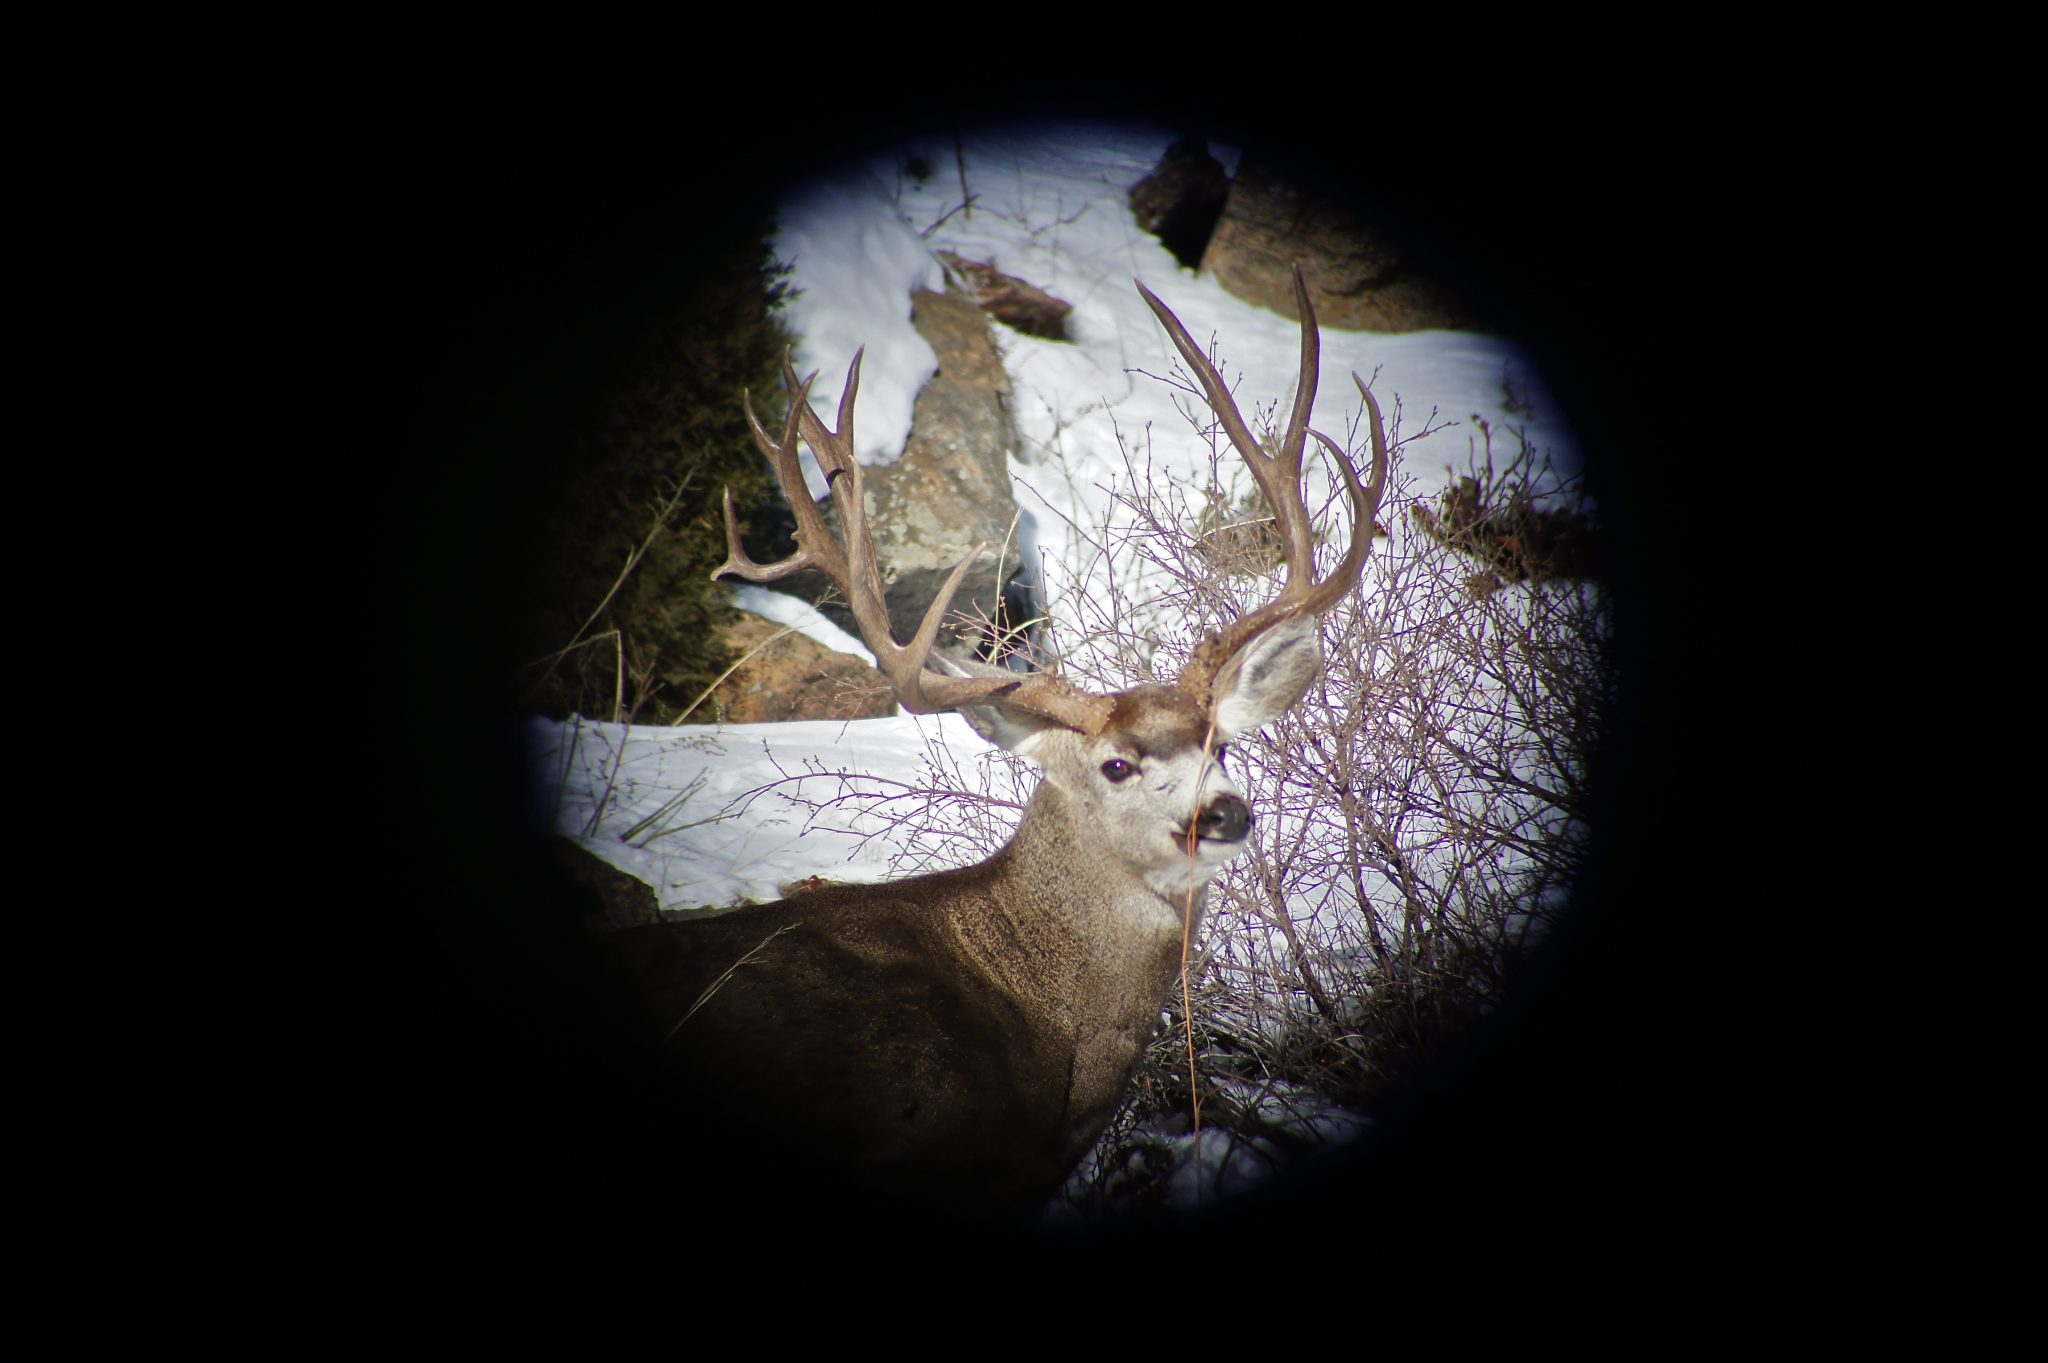 Digiscoping is a great way to document the animals you see scouting and on your hunt